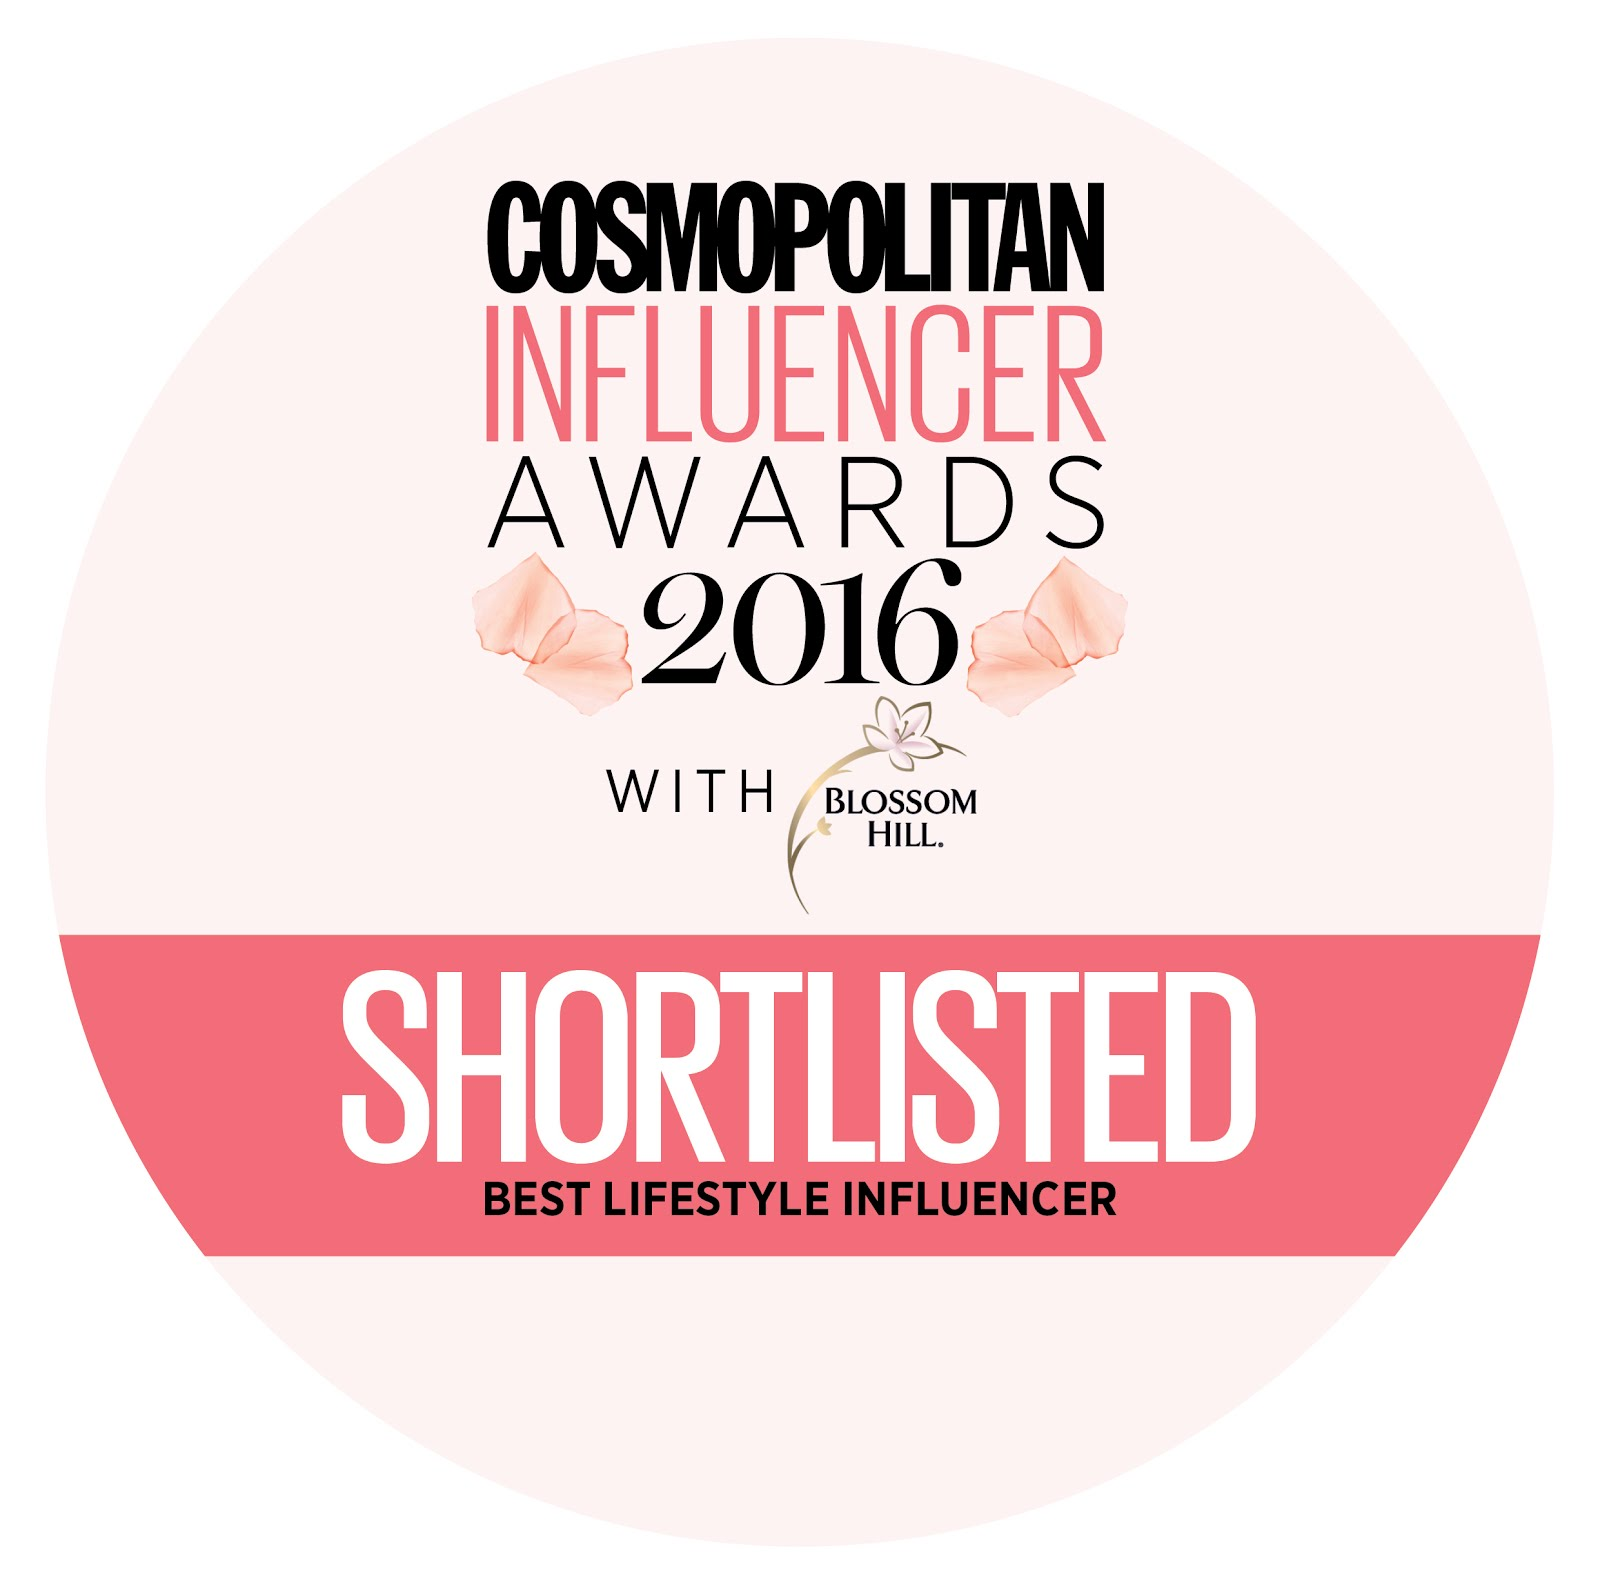 Cosmopolitan Influencer Awards